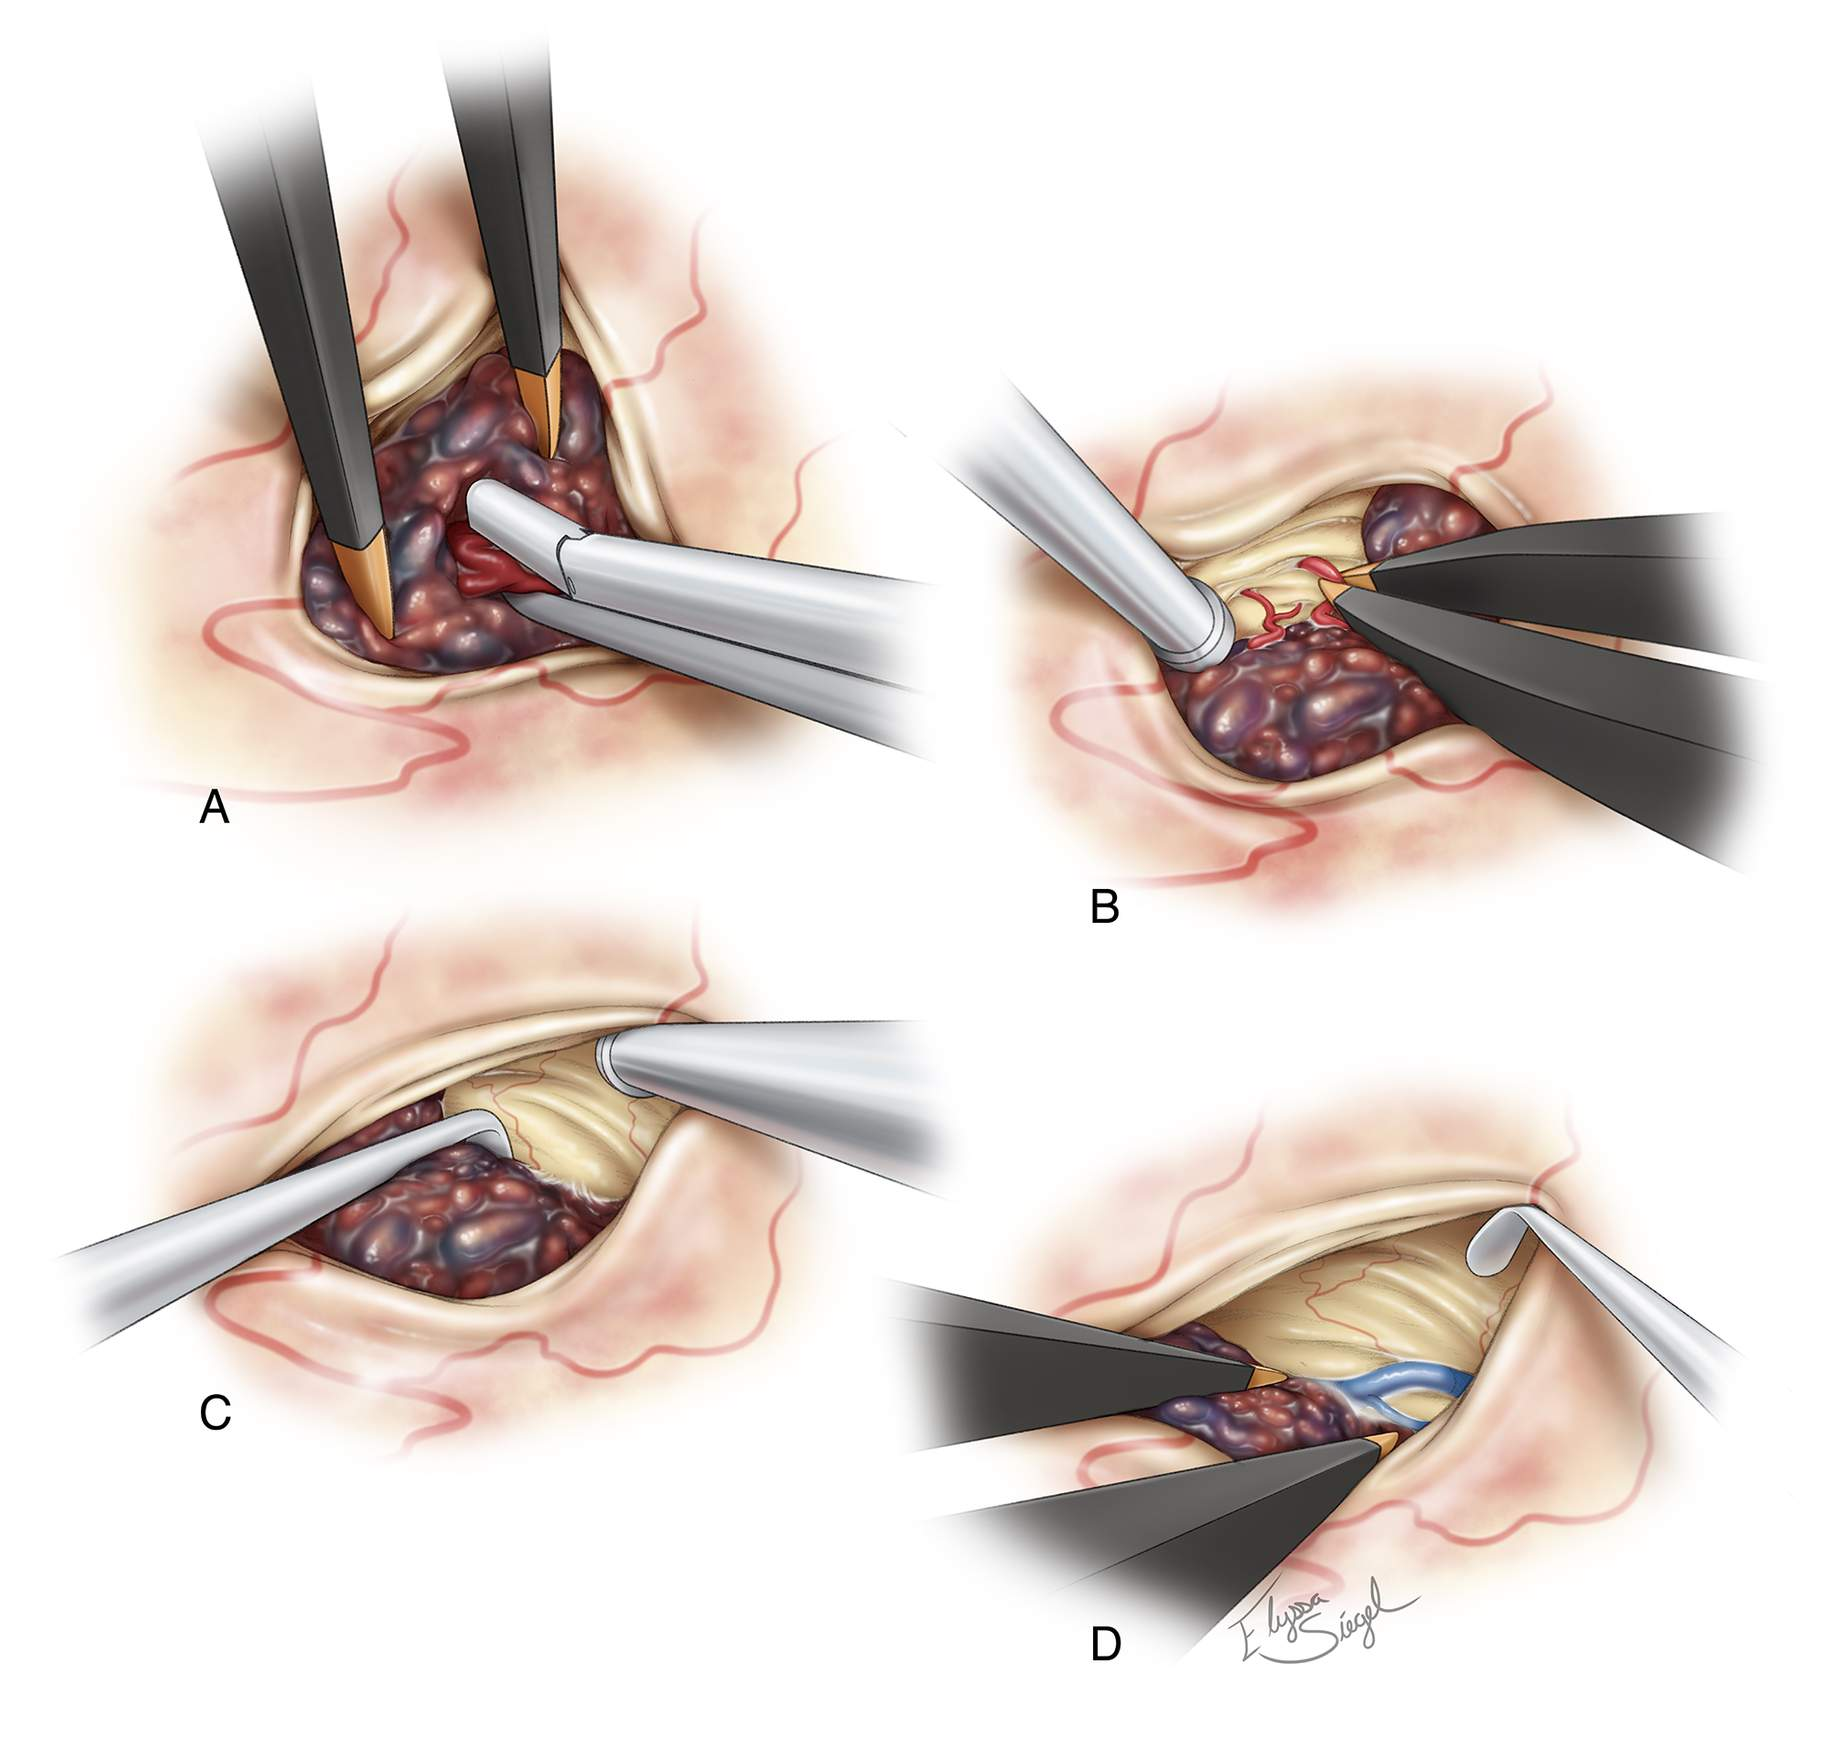 Figure 6: After exposure of the CM, the suction device or pituitary rongeurs are used to evacuate the hematoma from within and around the CM (A). Next, the small feeding vessels are isolated, coagulated, and cut (B). The capsule of the decompressed lesion is mobilized away from the gliotic margins (C). The DVA is carefully protected and mobilized away from the lesion (D).